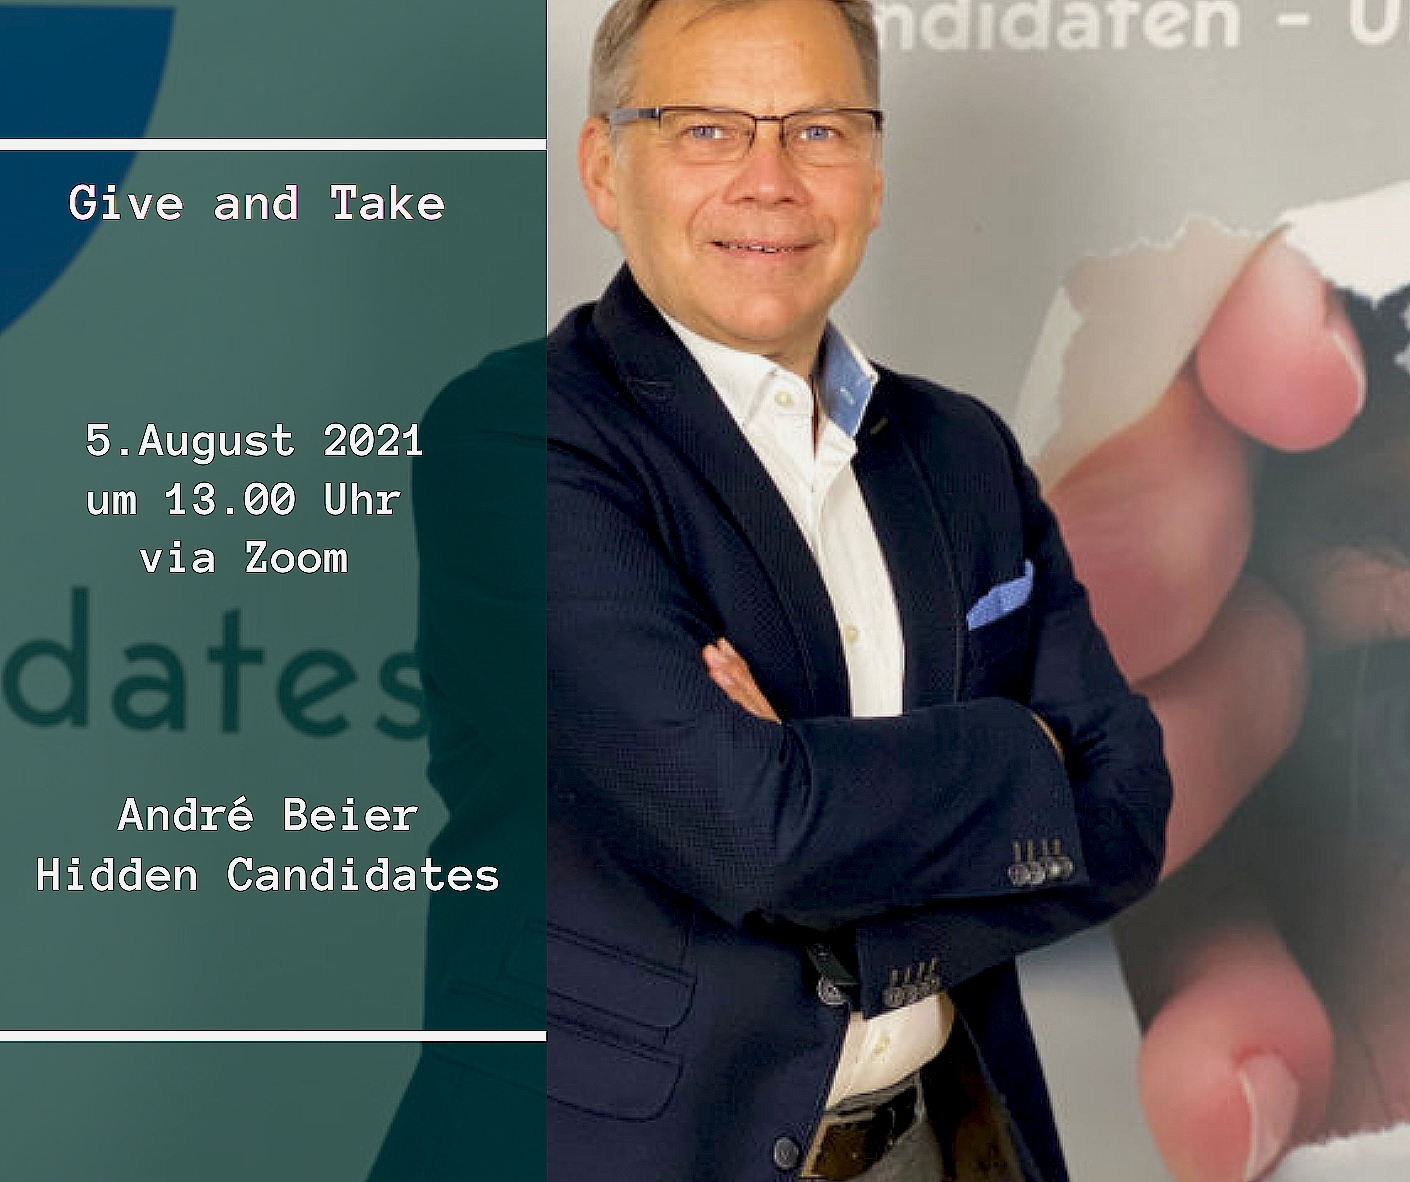 Andre-Beier-Kopie Give and Take   5.8.2021   André Beier, Hidden Candidates